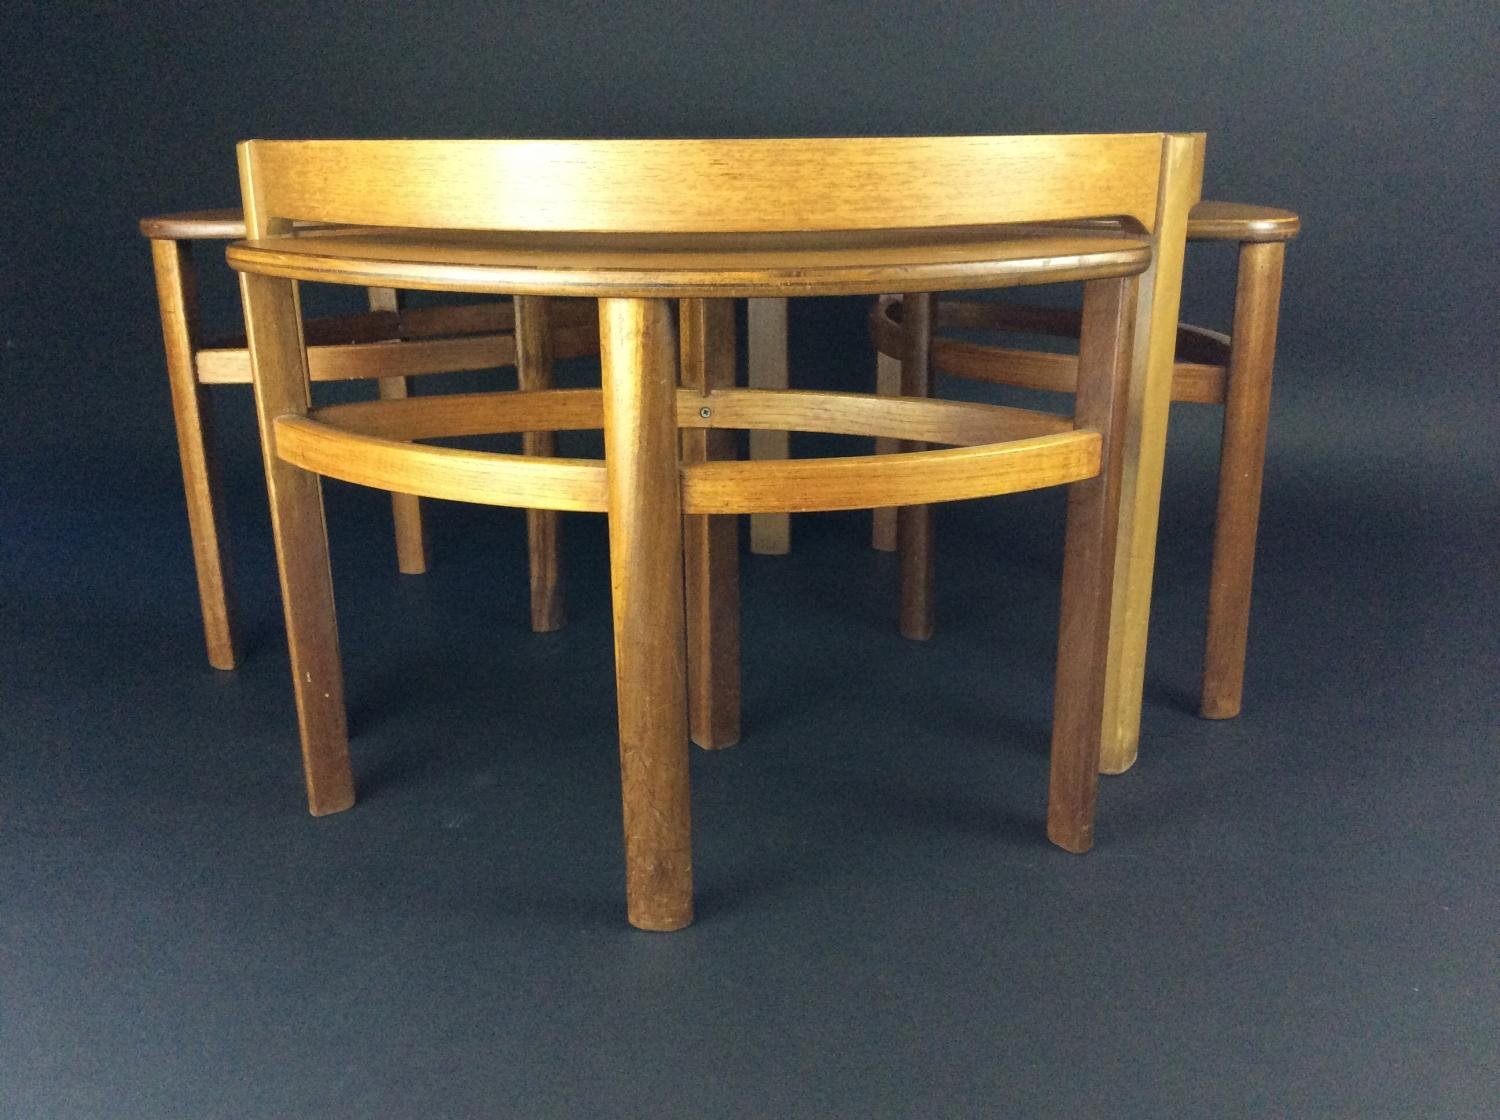 Retro light teak circular glass top coffee table nest of tables by -  Nathan Retro Teak Coffee Table And Nest Picture 3